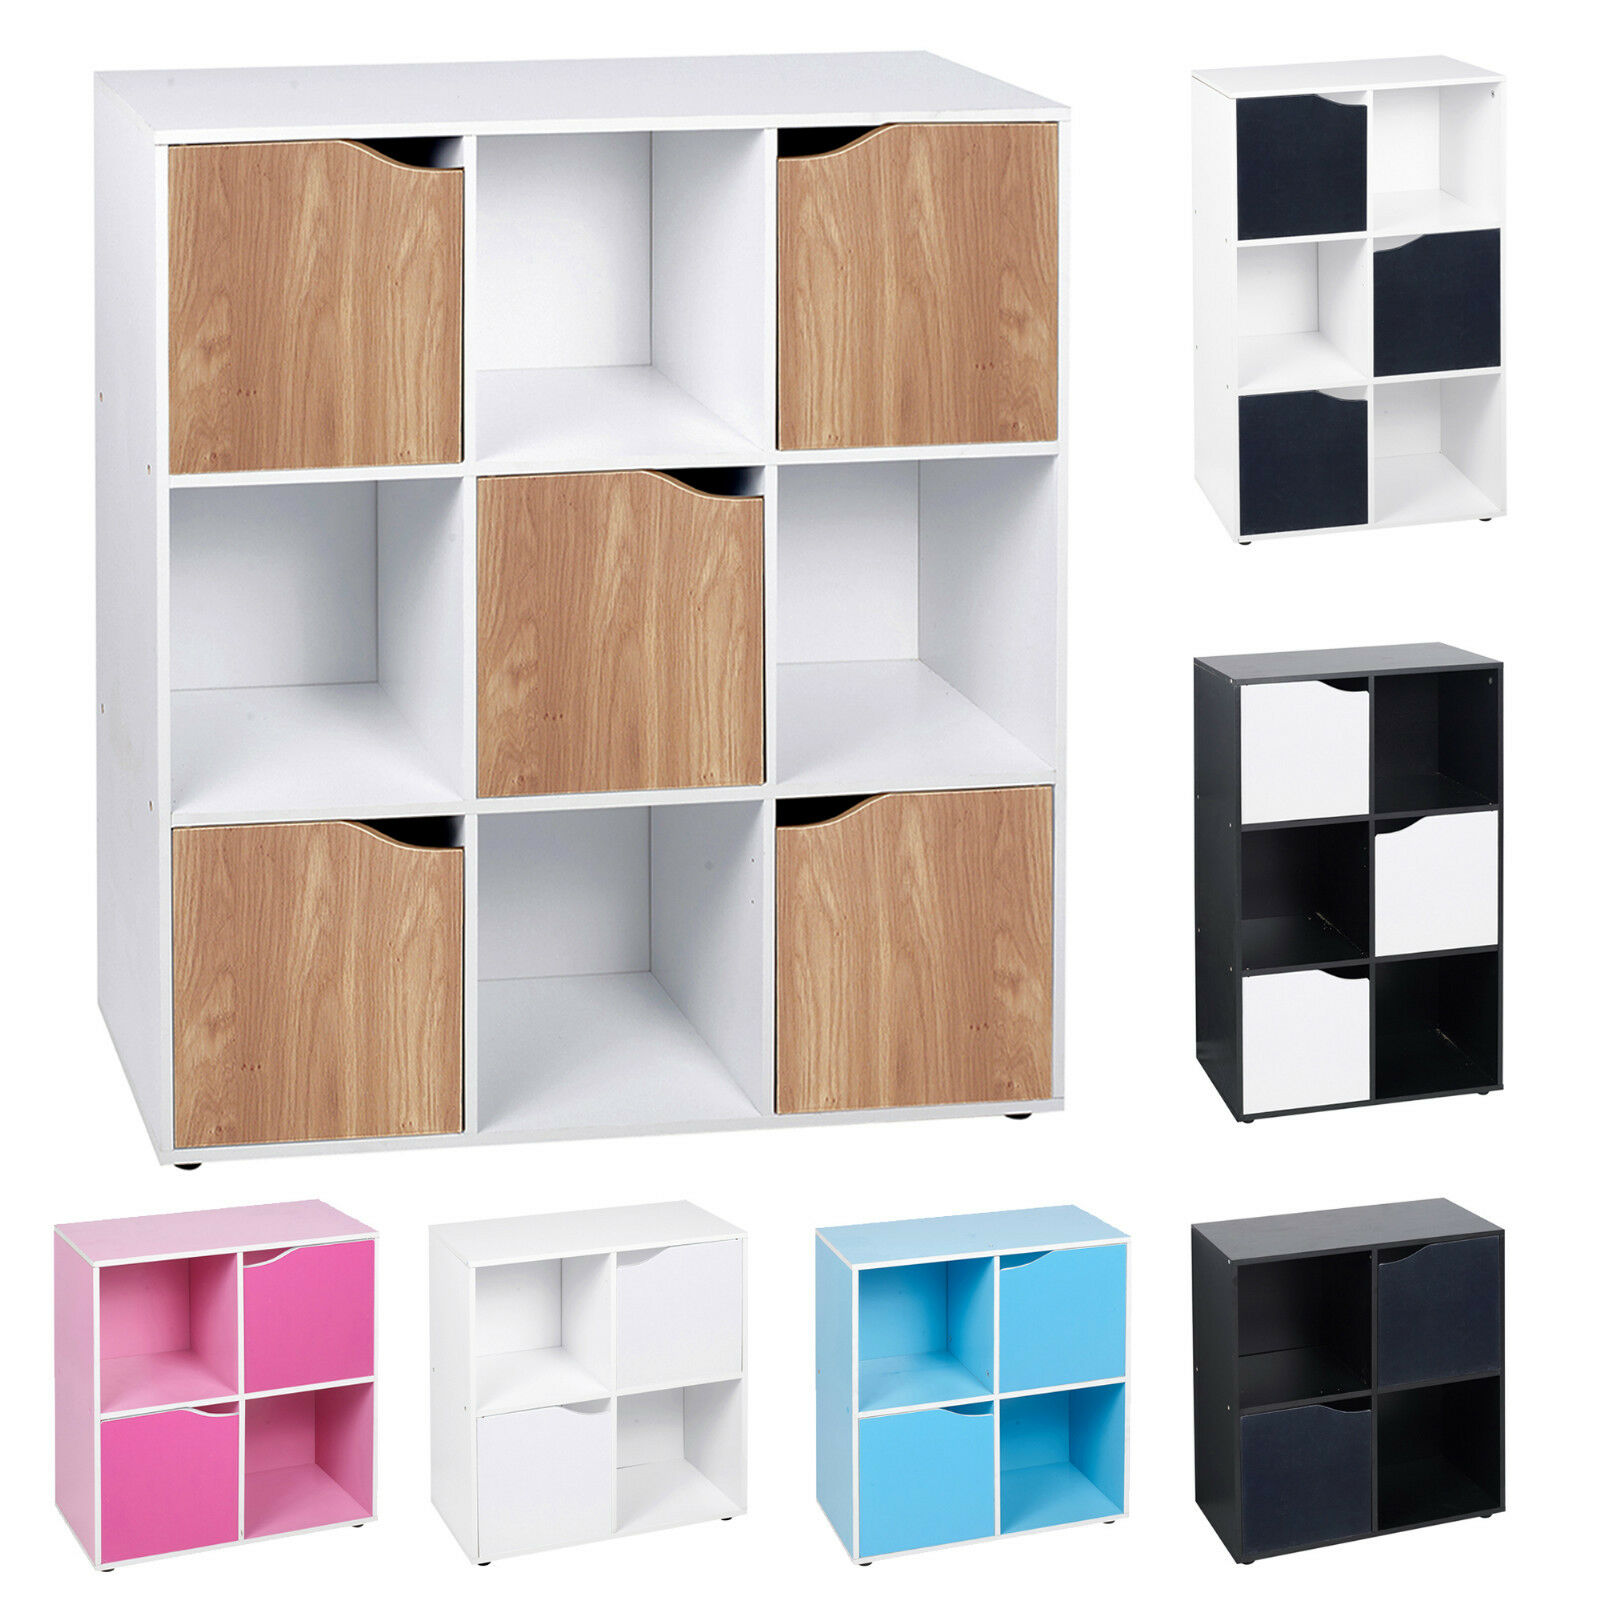 4 6 9 Cube Wooden Bookcase Shelving Display Shelves Storage Unit Wood Shelf Door